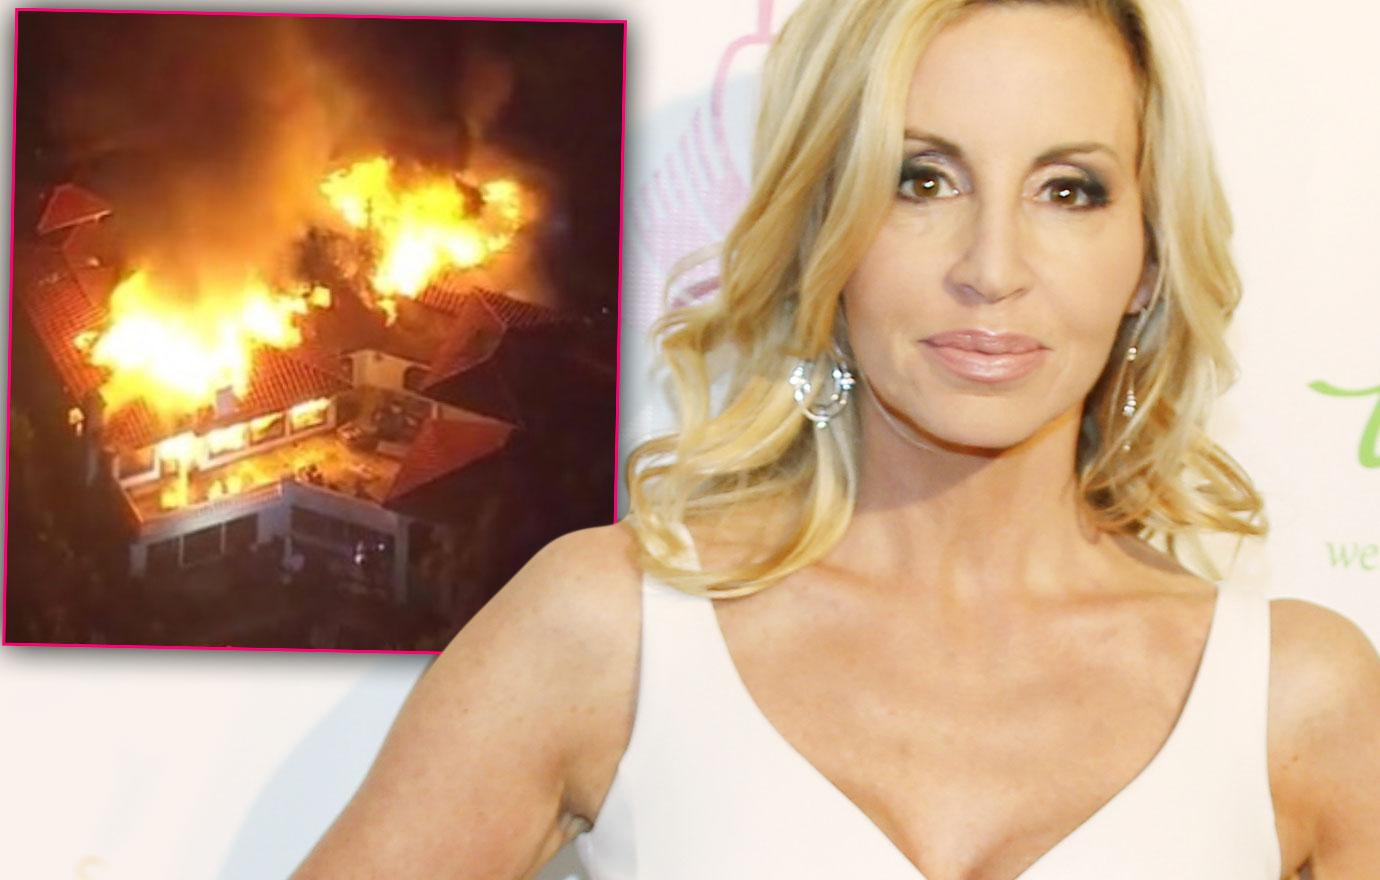 Camille Grammer's Wedding Dress Saved After House Burned Down